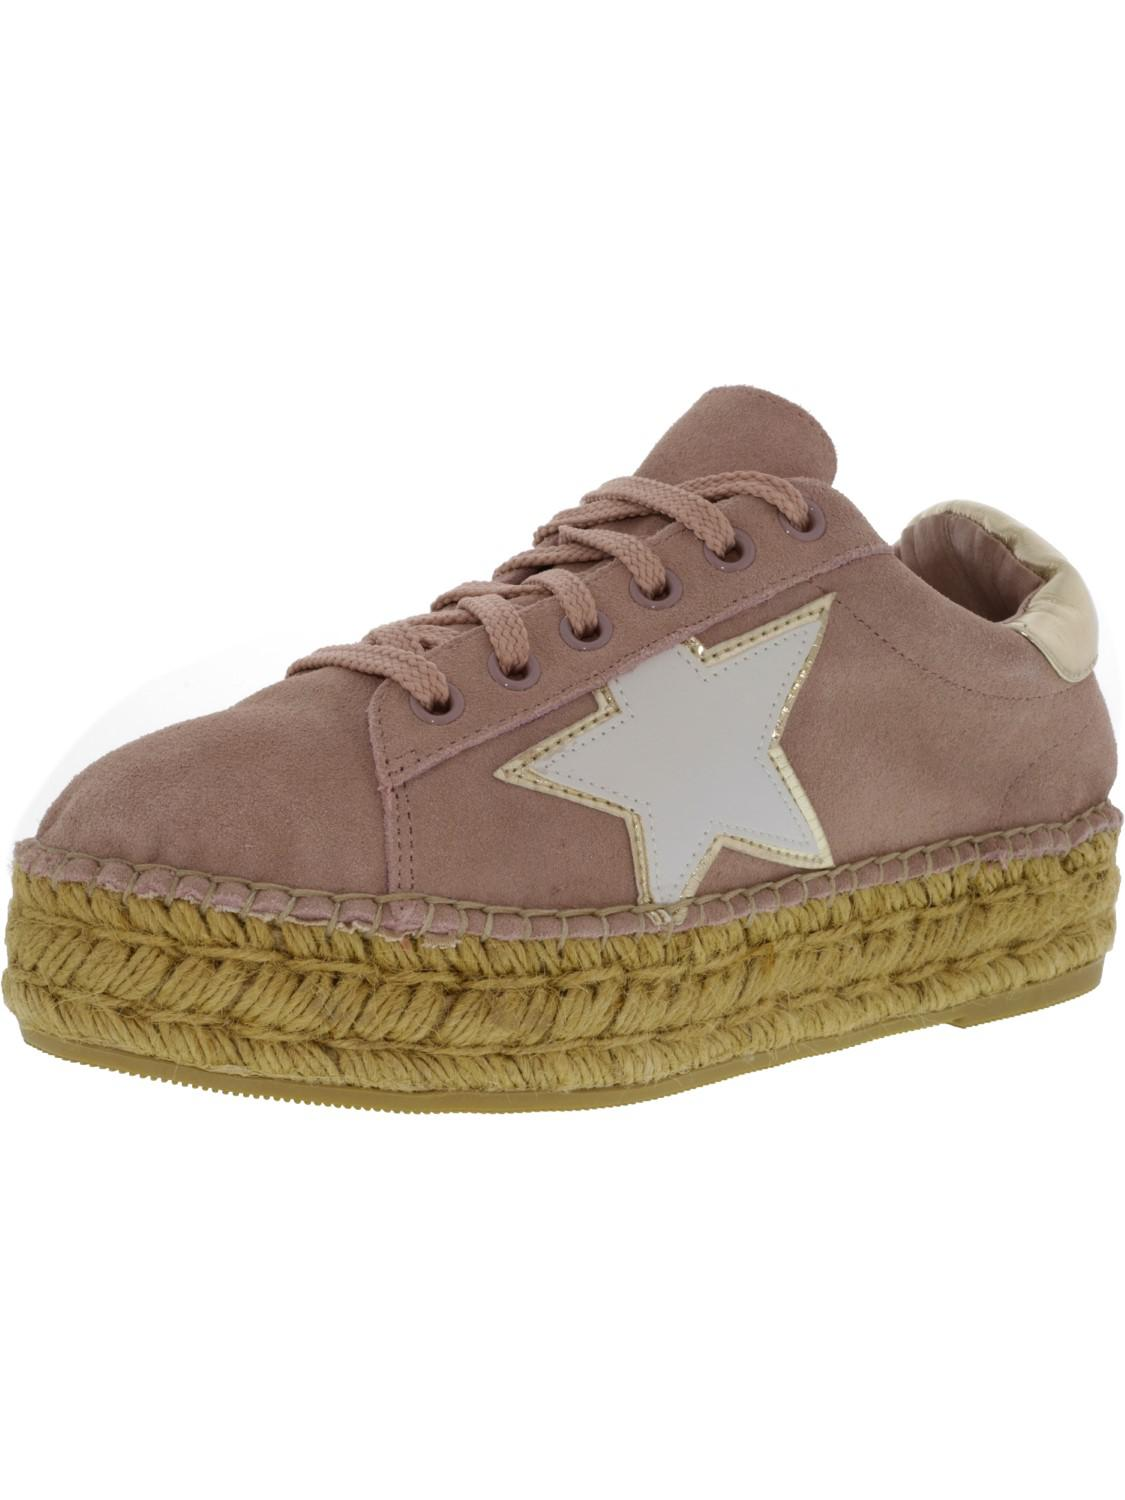 ee0444e0dfc Lyst - Steve Madden Phase Ankle-high Leather Fashion Sneaker - 10m ...